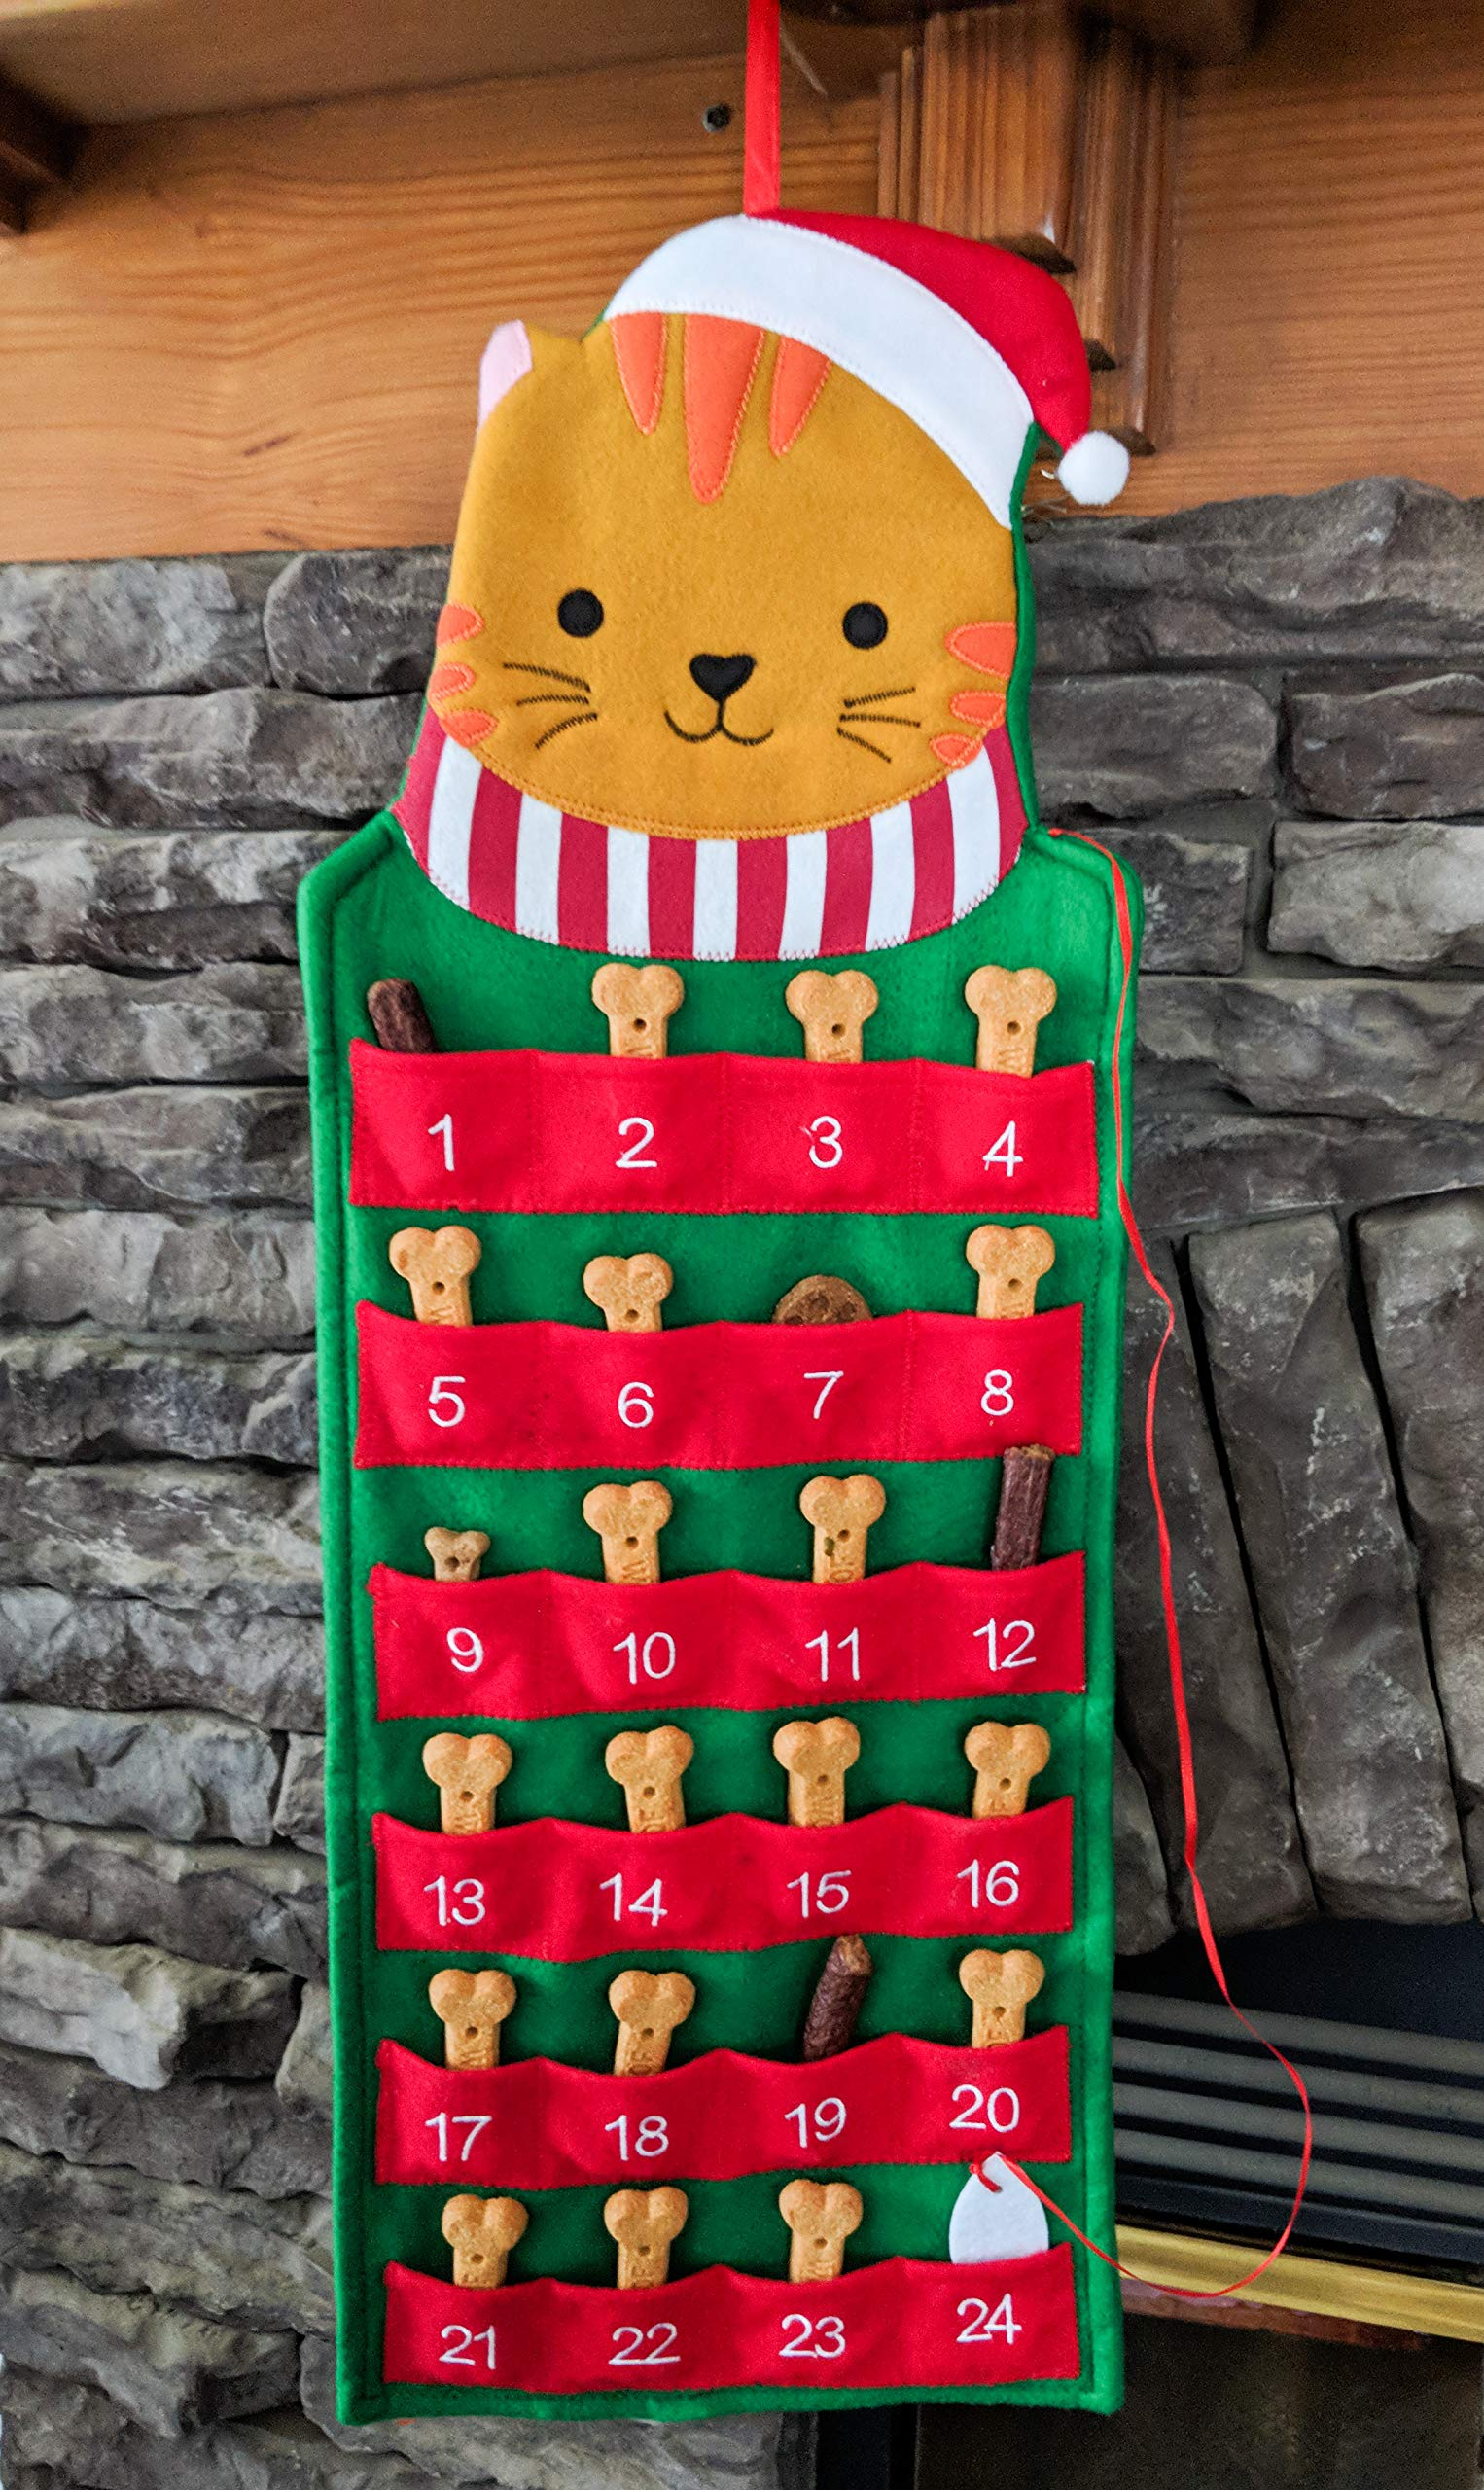 Cat Pet Advent Holiday Calendars Advent Calendar Christmas Advent Calendar For Cats And Kittys With Pockets Christmas Countdown With Treats Hanging Felt Cat Christmas Christmas D Cat Advent Calendar Amazon Com Au Home